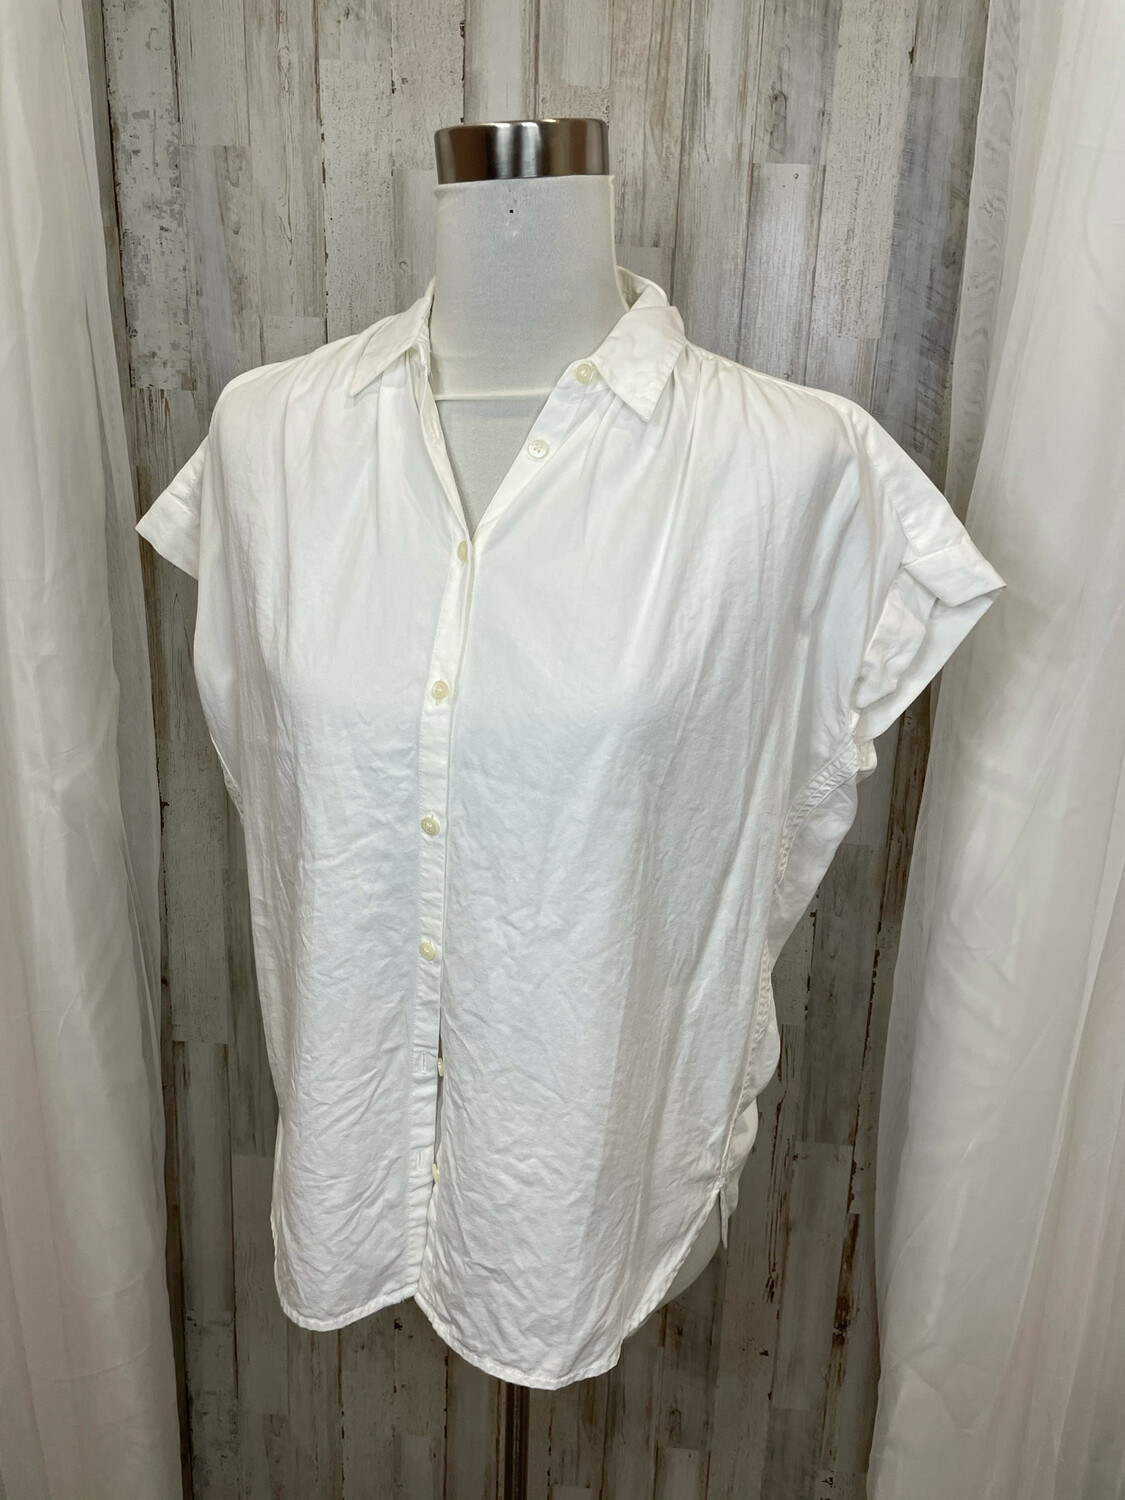 Madewell White Oversized Button Down Top - XXS